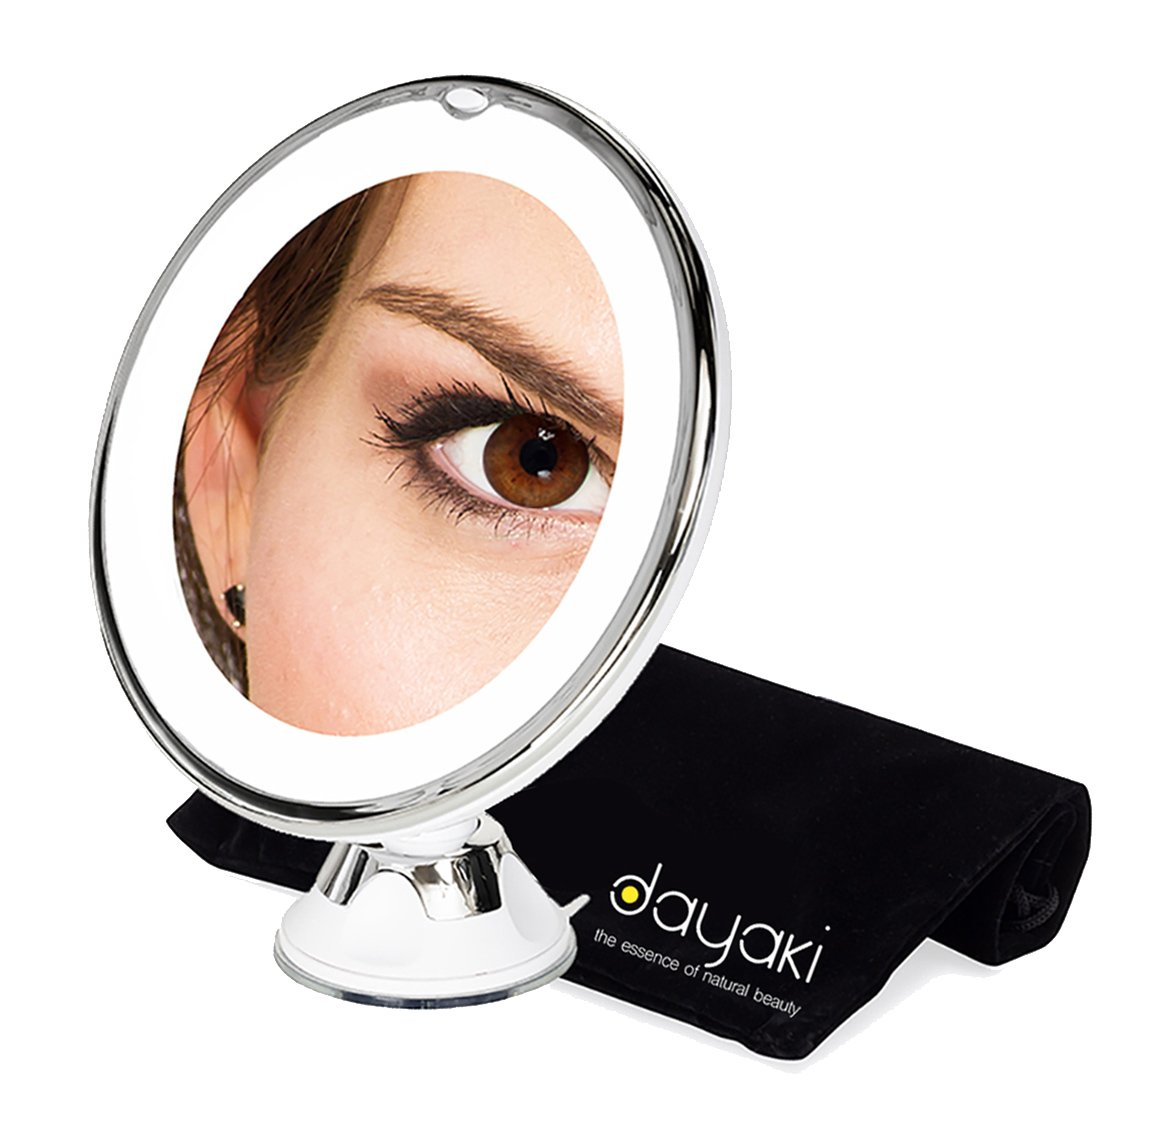 Magnifying Travel Lighted Makeup Mirror - 10 x Magnification for Flawless Make Up Application and Tweezing Eyebrows